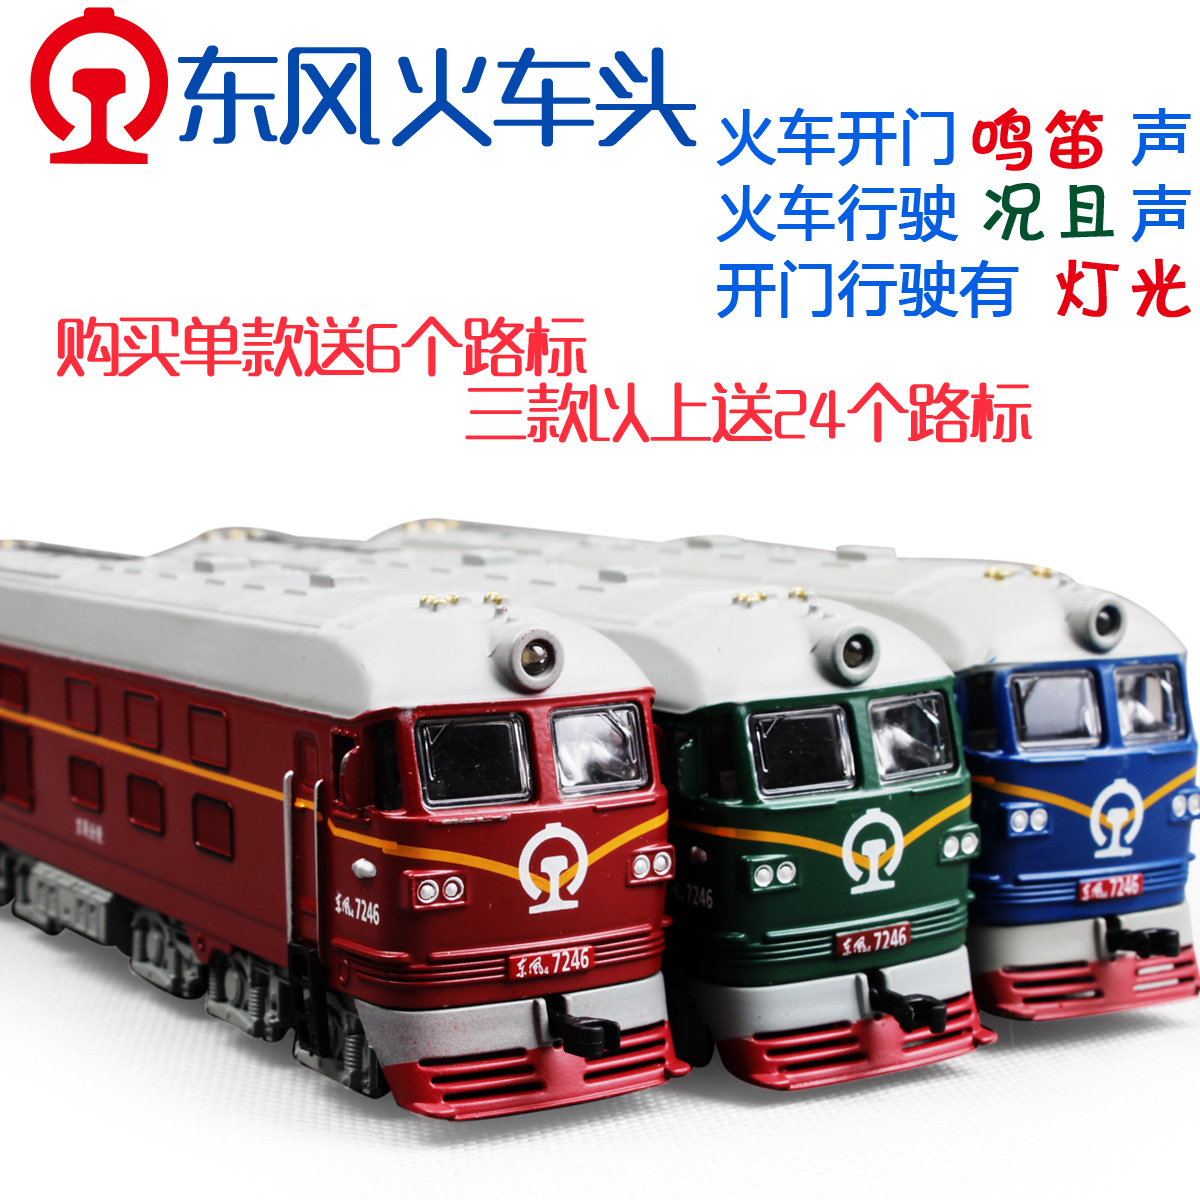 Shenghui sound and light back of the train dongfeng 7246 diesel locomotive model train model children's toys